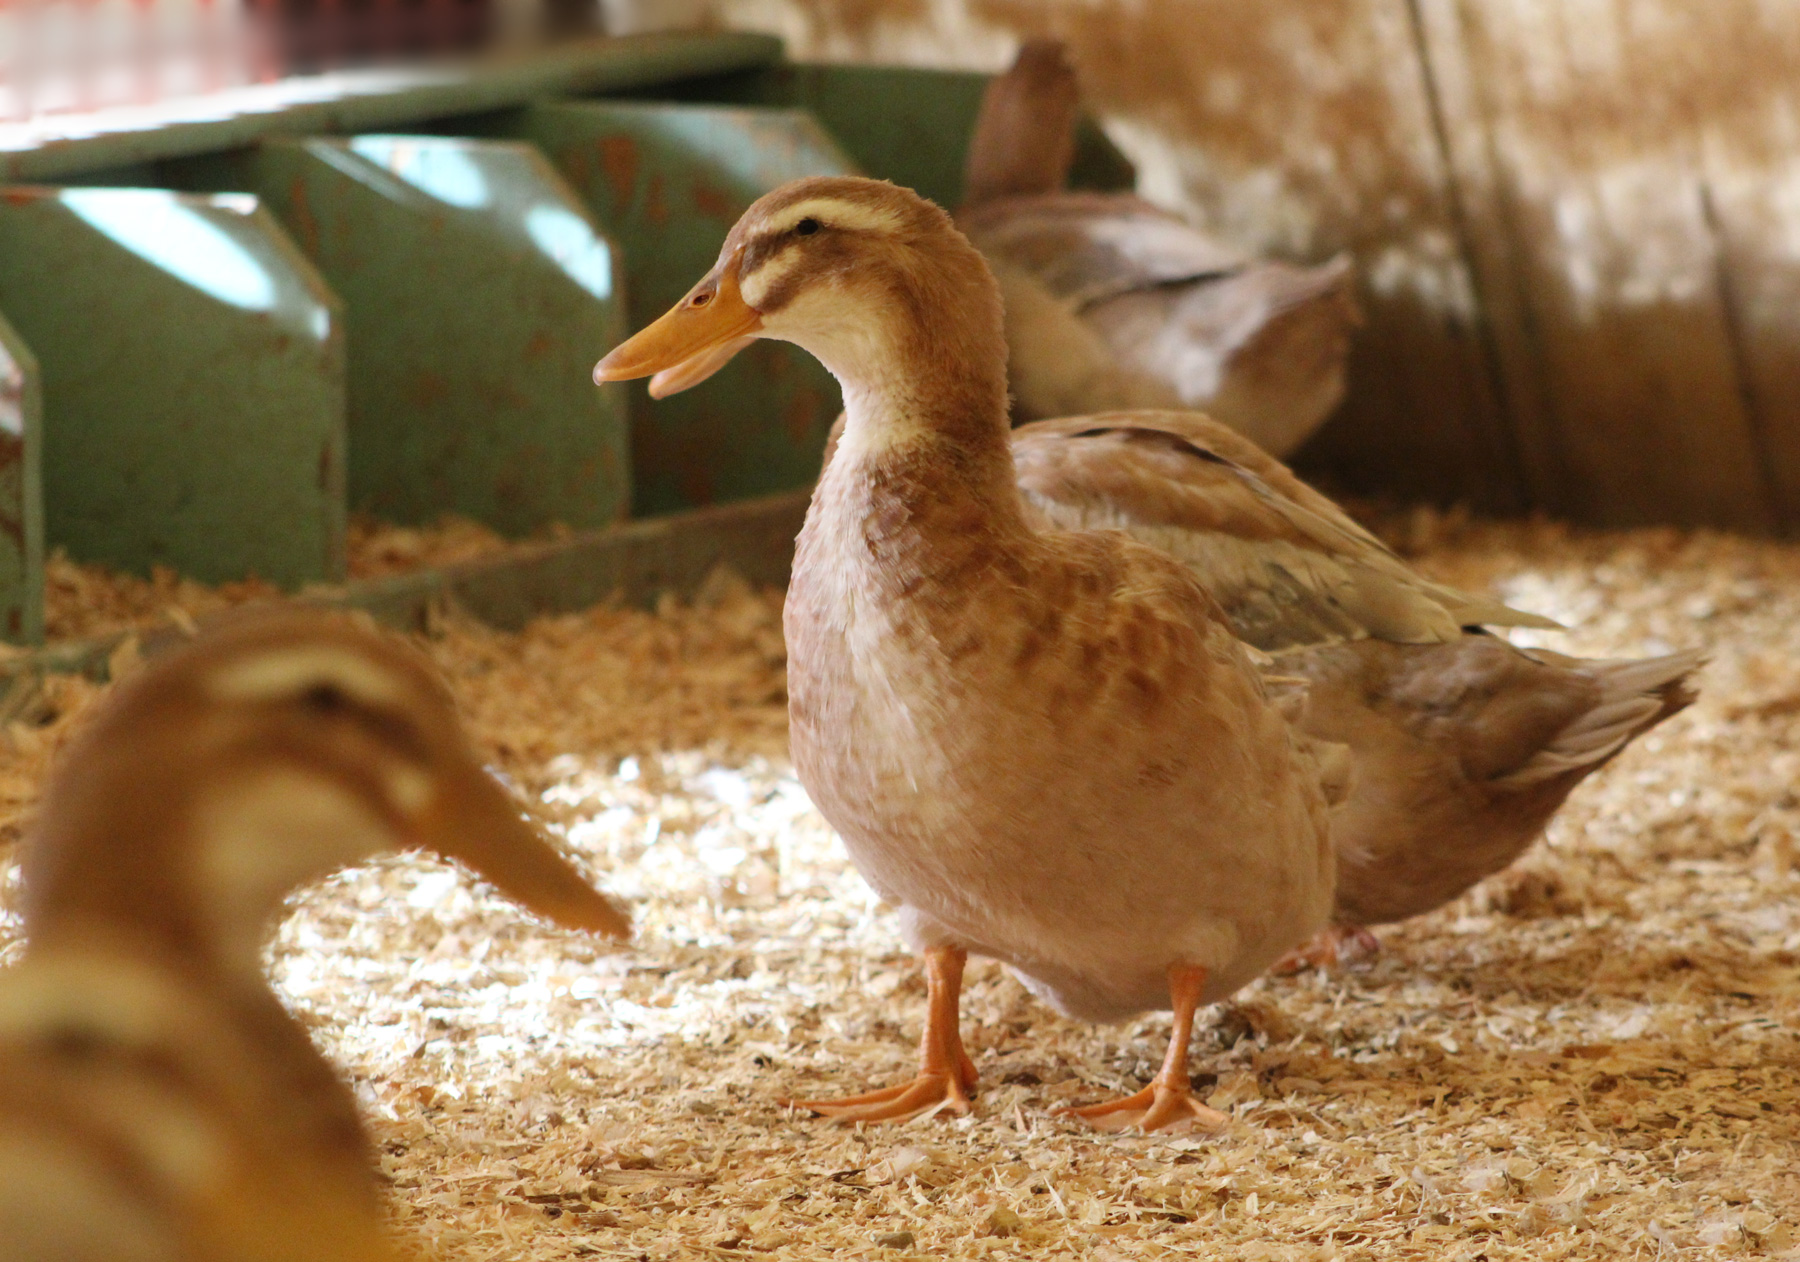 McMurray Hatchery Blog - Raising Chickens with Ducks - Nesting Boxes for Ducks